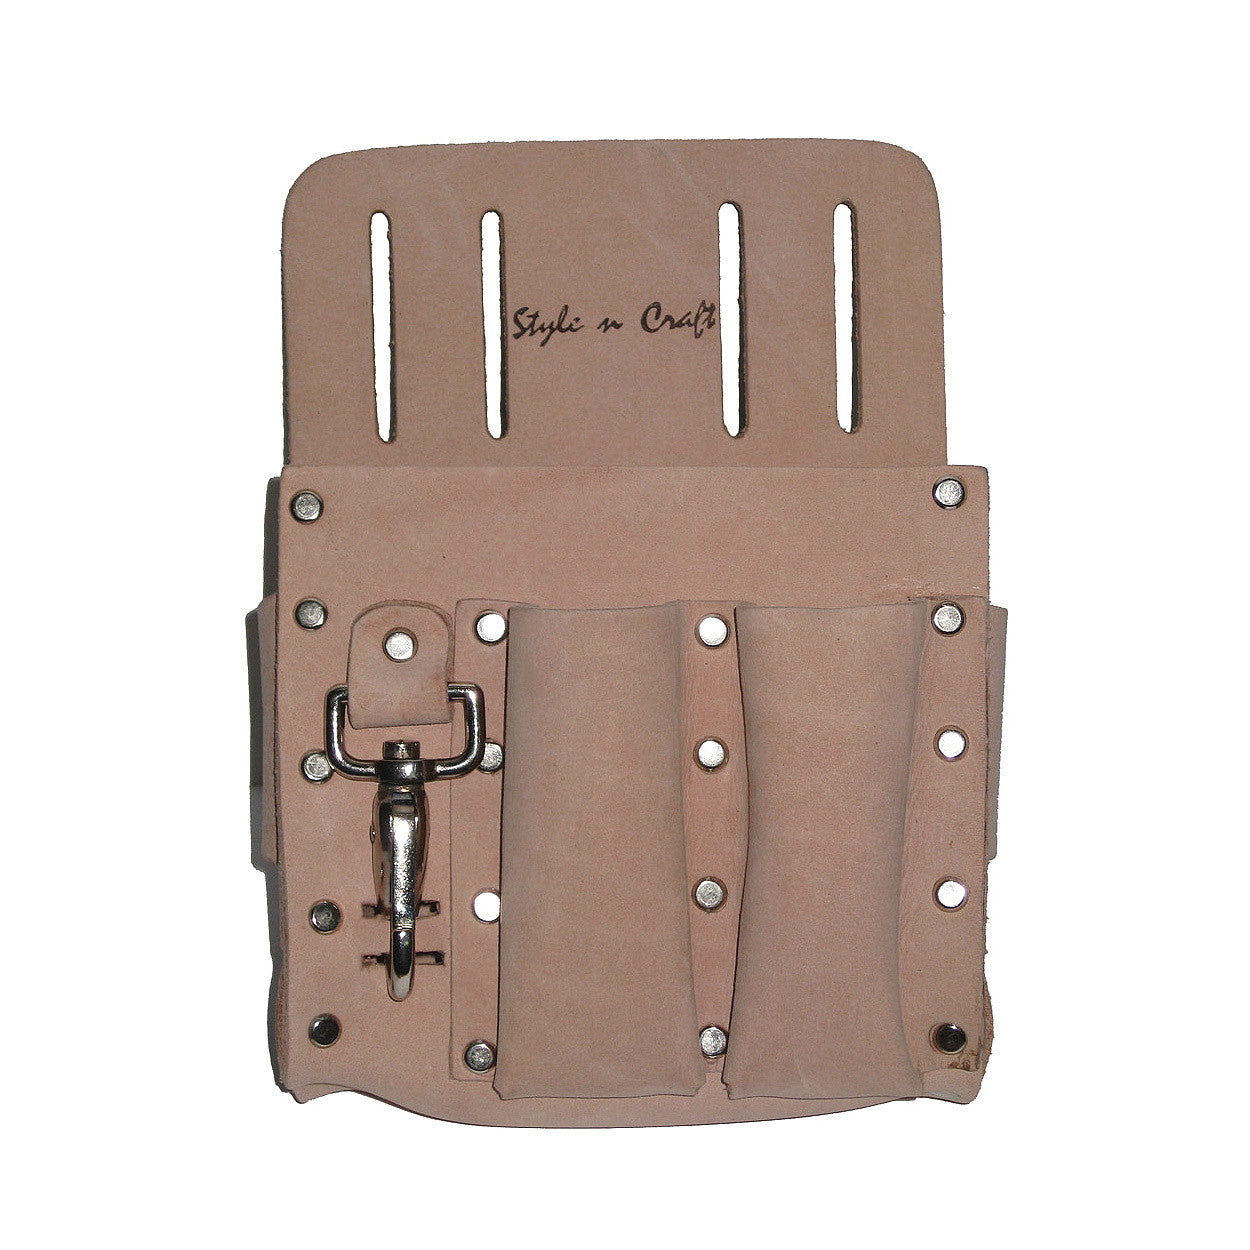 5 Pocket Electrician's Tool Pouch in Heavy Top Grain Leather